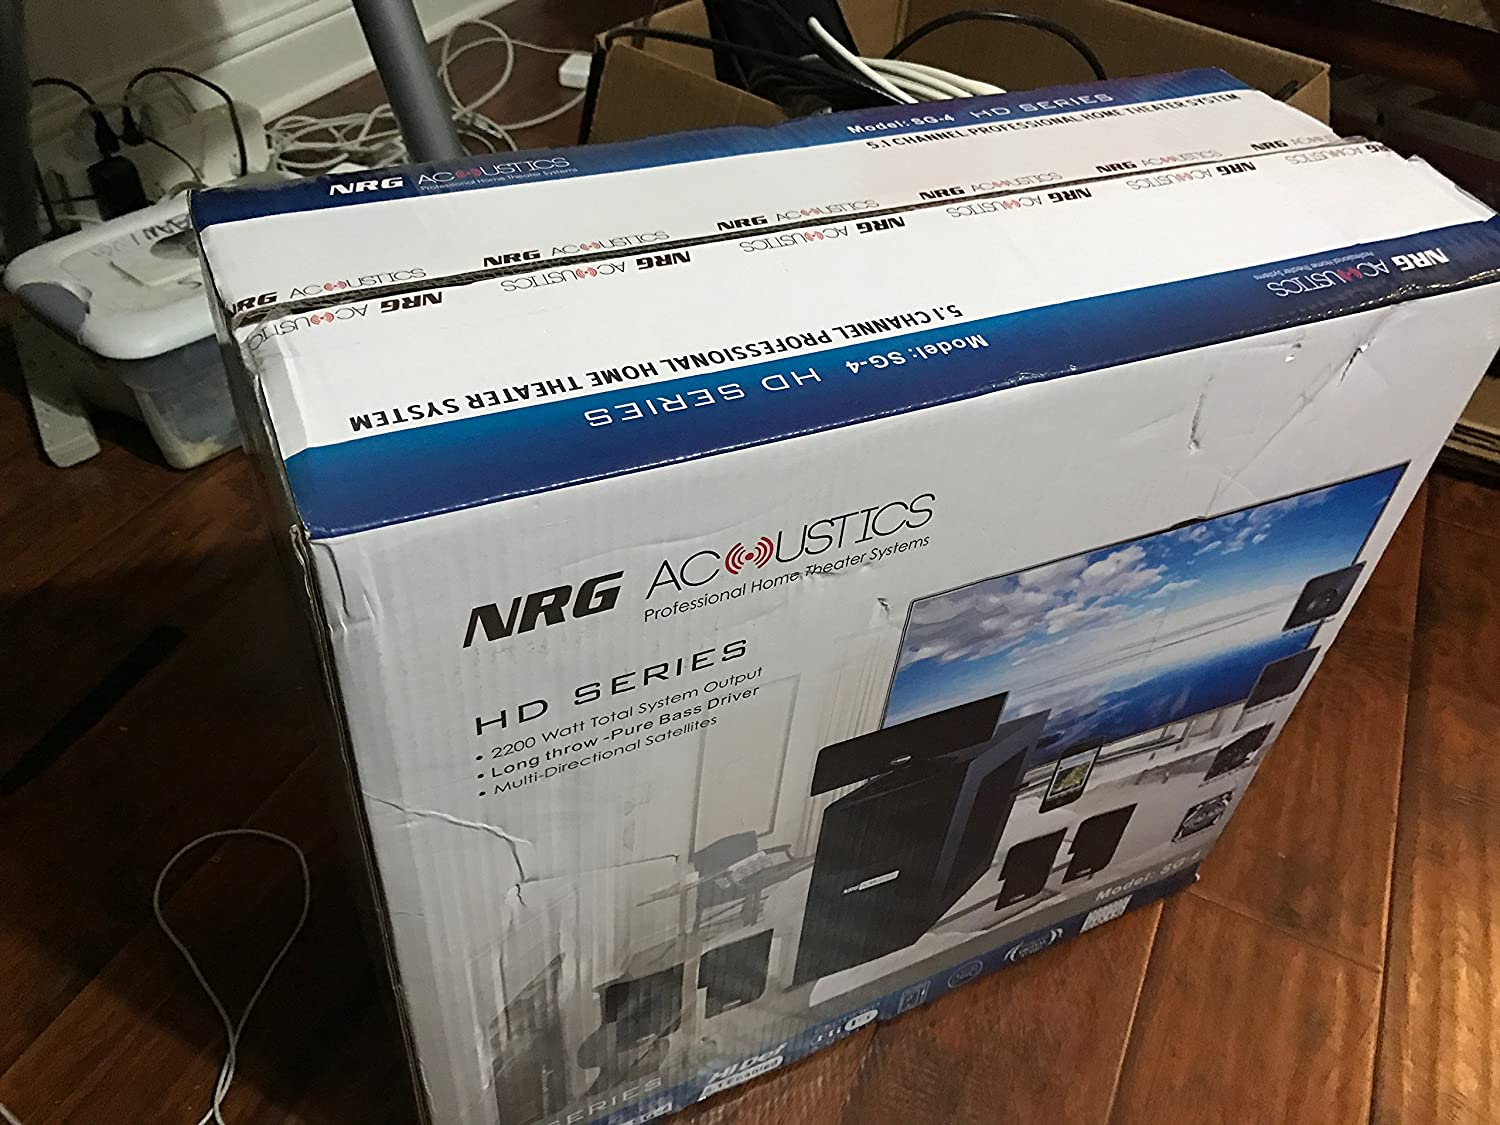 Amazon.com: NRG Acoustics HD Series Professional Home Theater: Home Audio & Theater